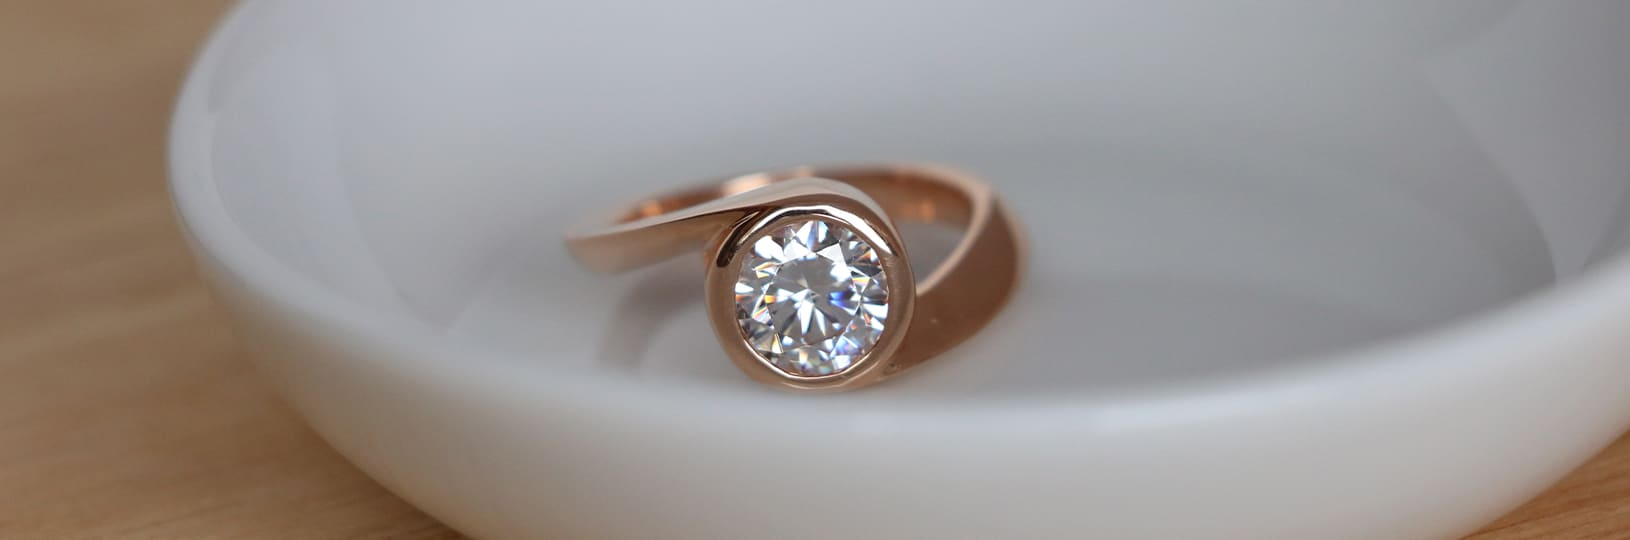 An engagement ring with a bezel setting